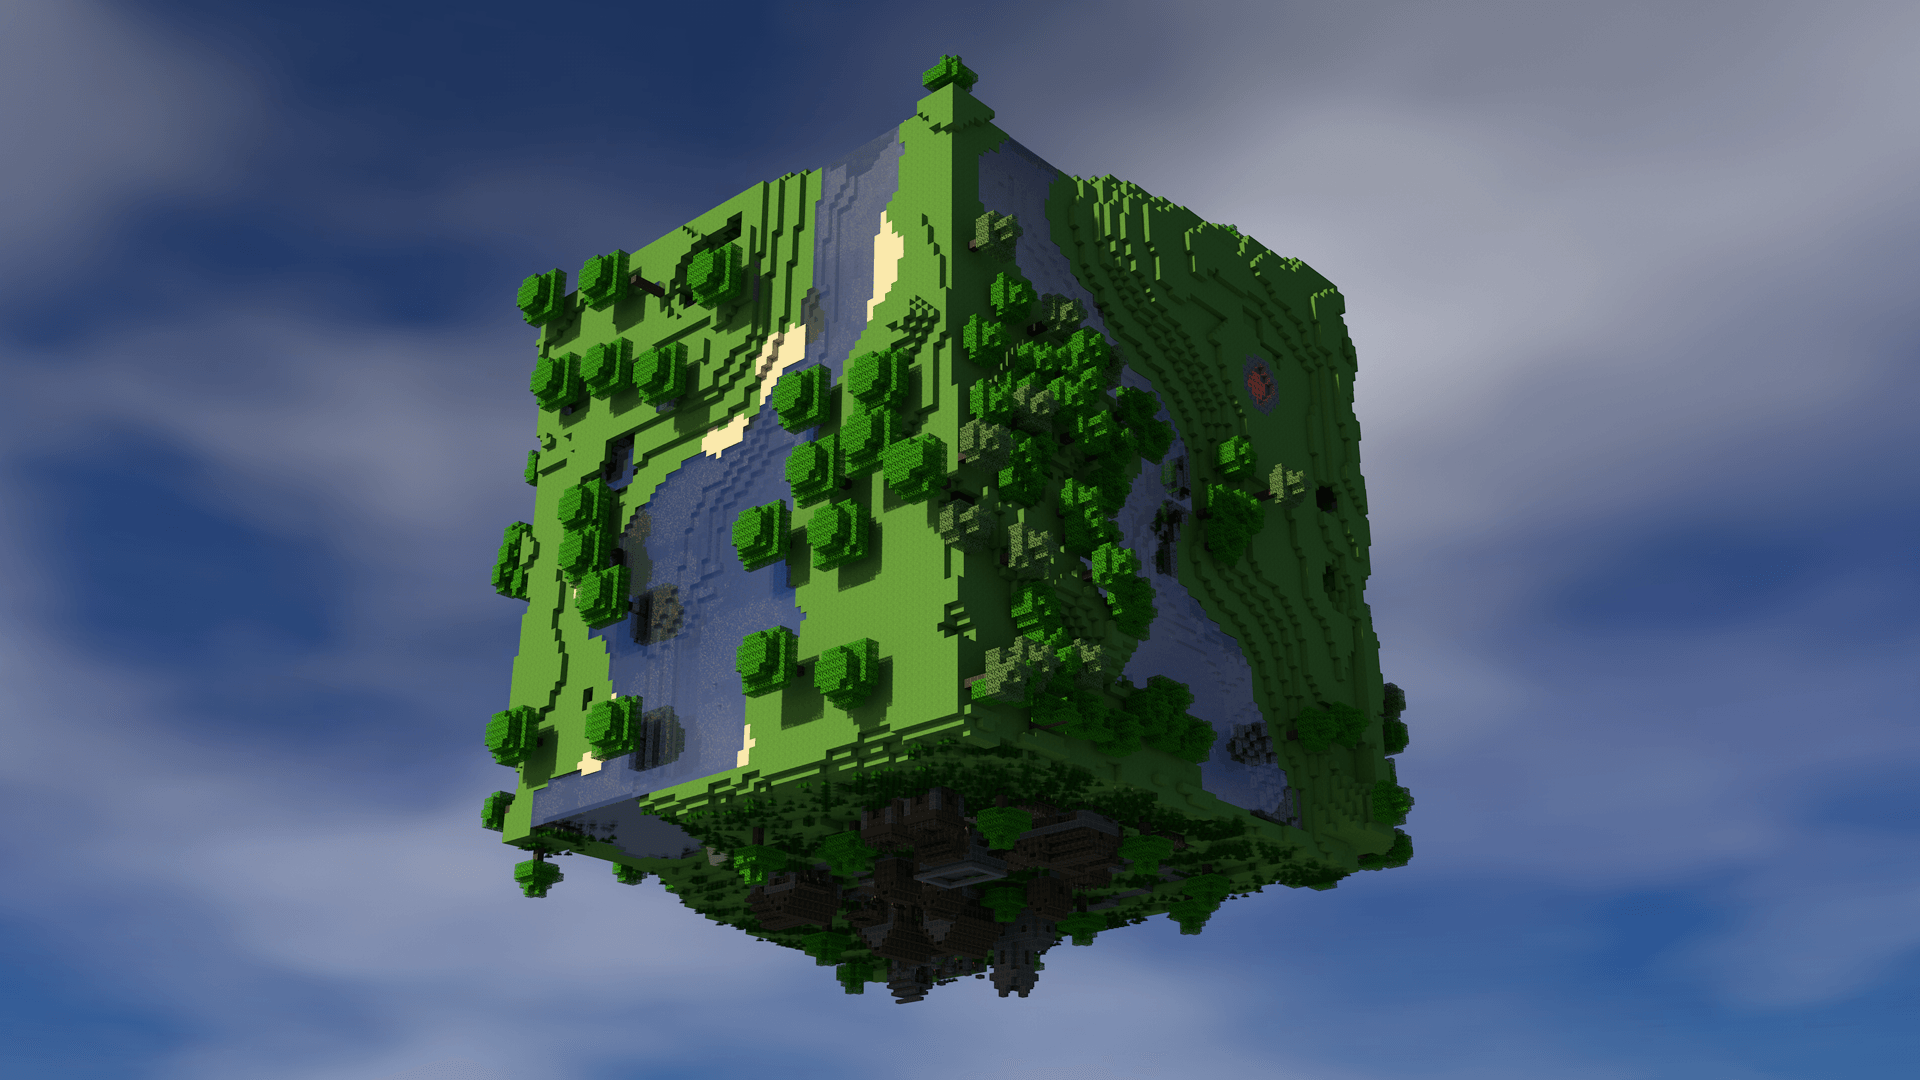 minecraft_world_cube_wallpaper_by_yannikpipek-d8b7hlc